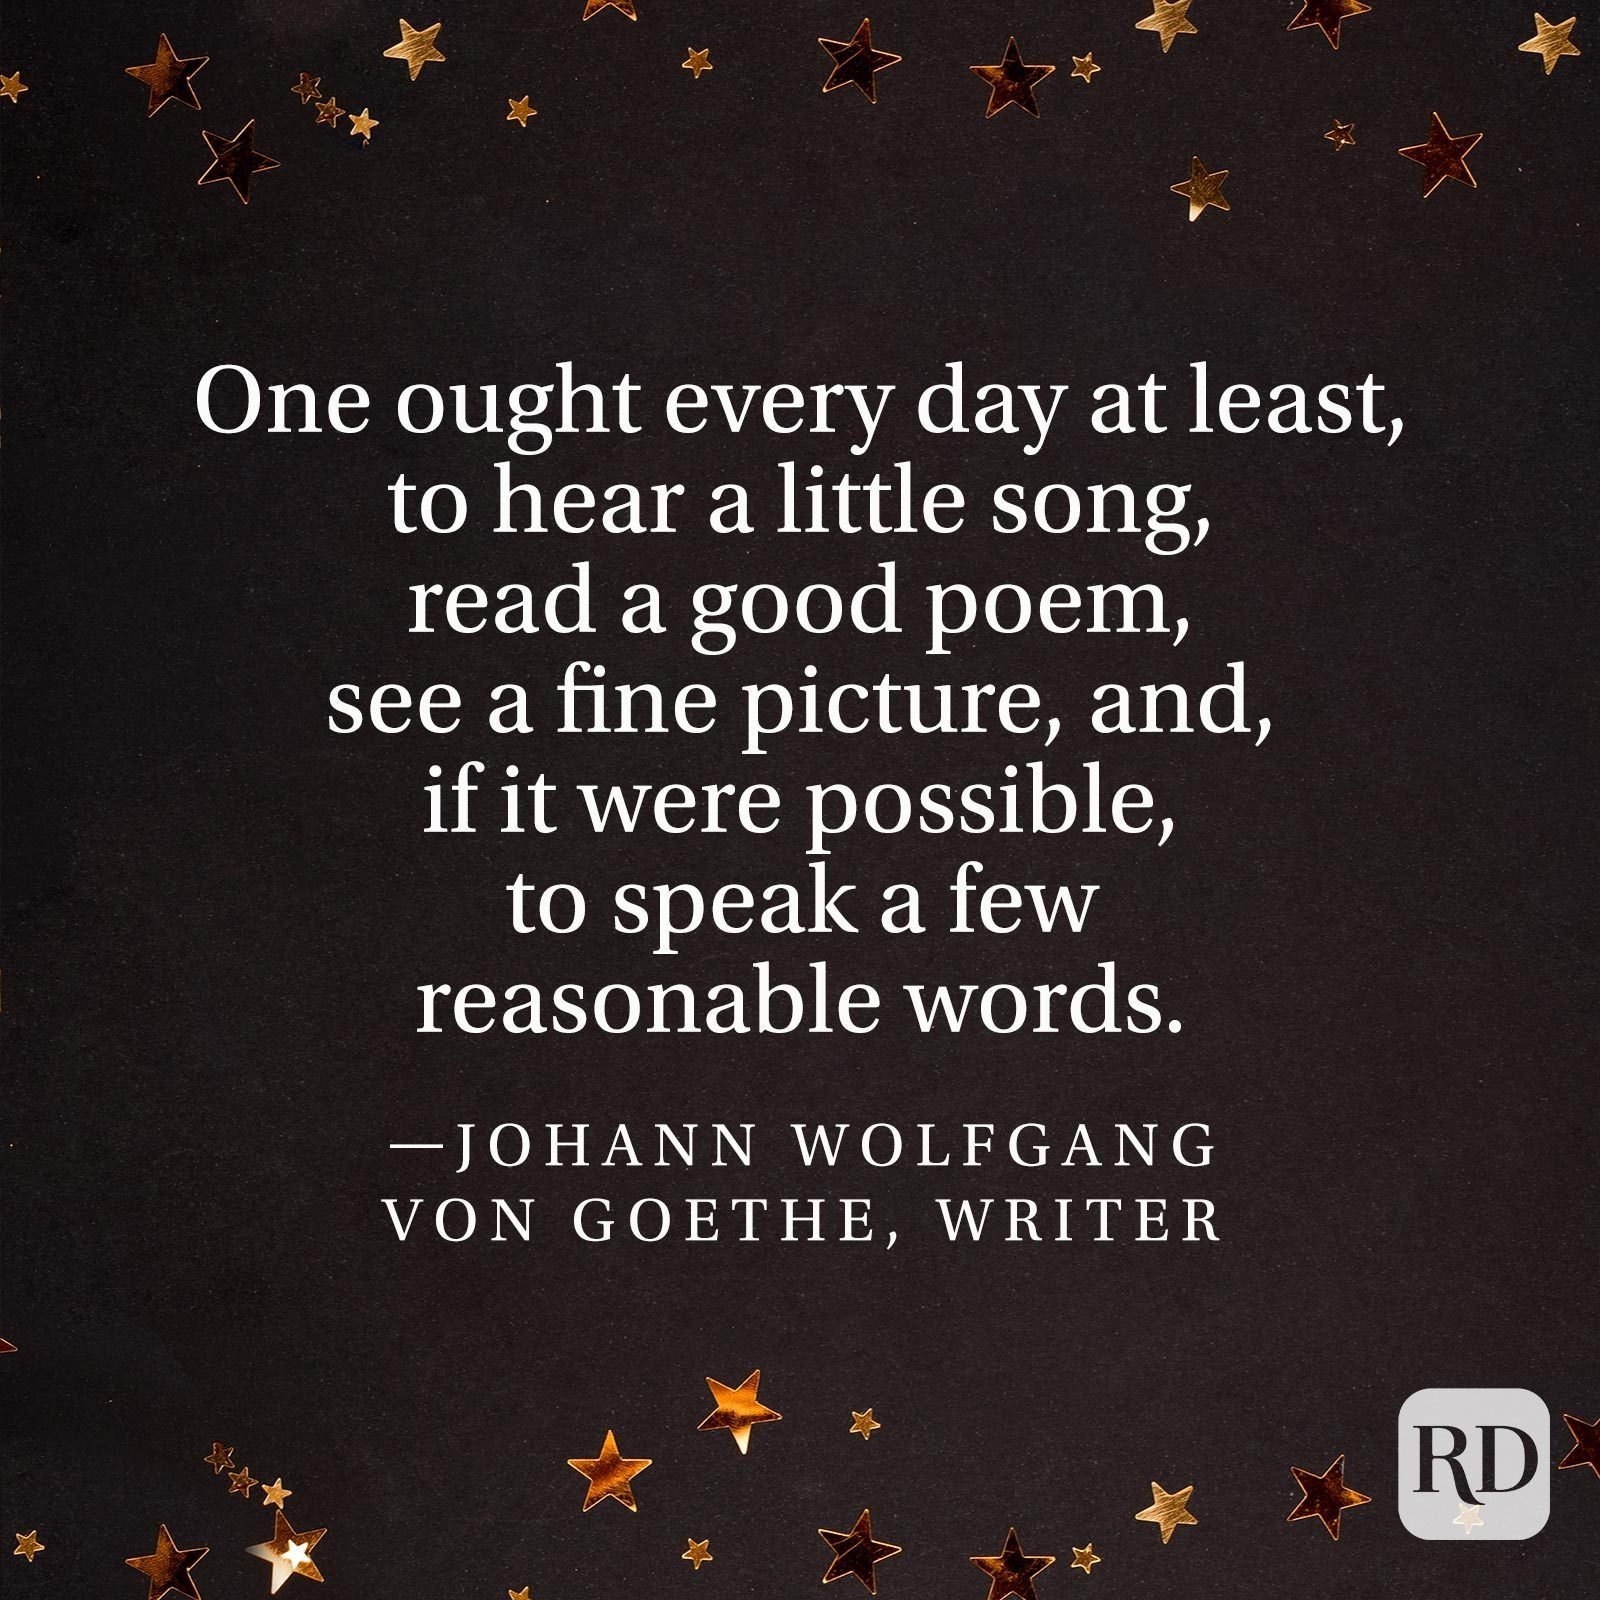 """""""One ought every day at least, to hear a little song, read a good poem, see a fine picture, and, if it were possible, to speak a few reasonable words."""" —Johann Wolfgang von Goethe, writer"""